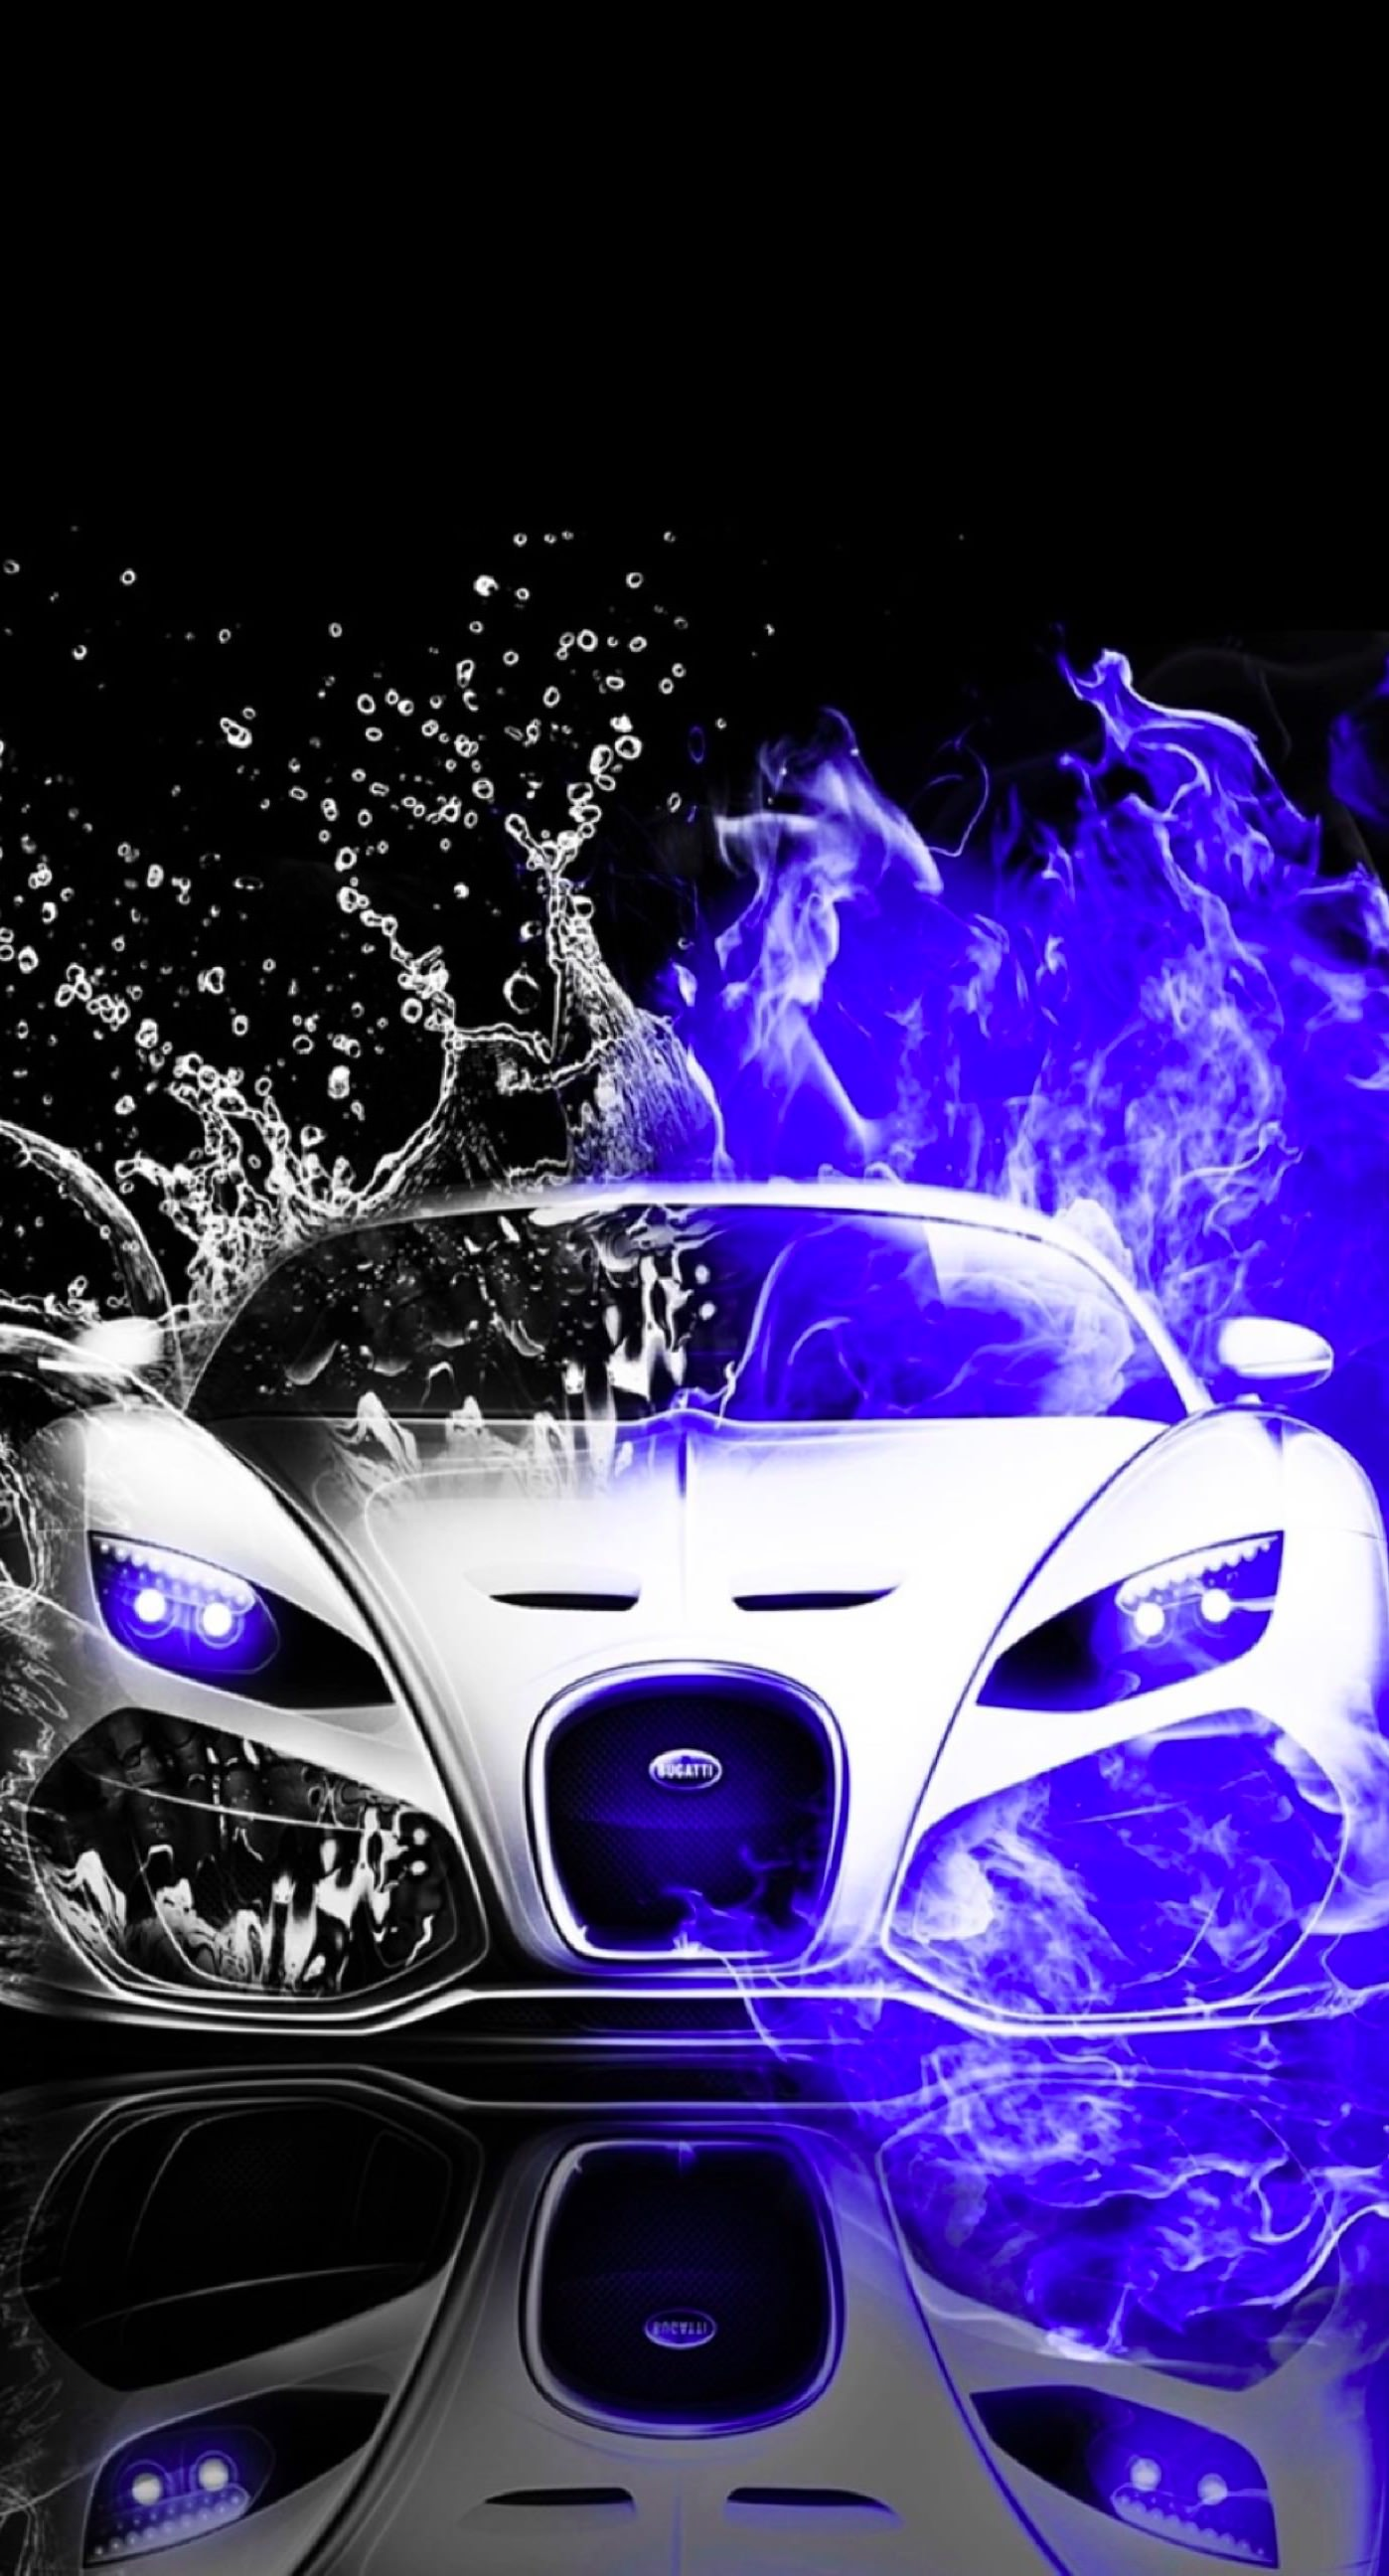 Cool Cars Blue Water Black And White Wallpaper Sc Iphone8plus